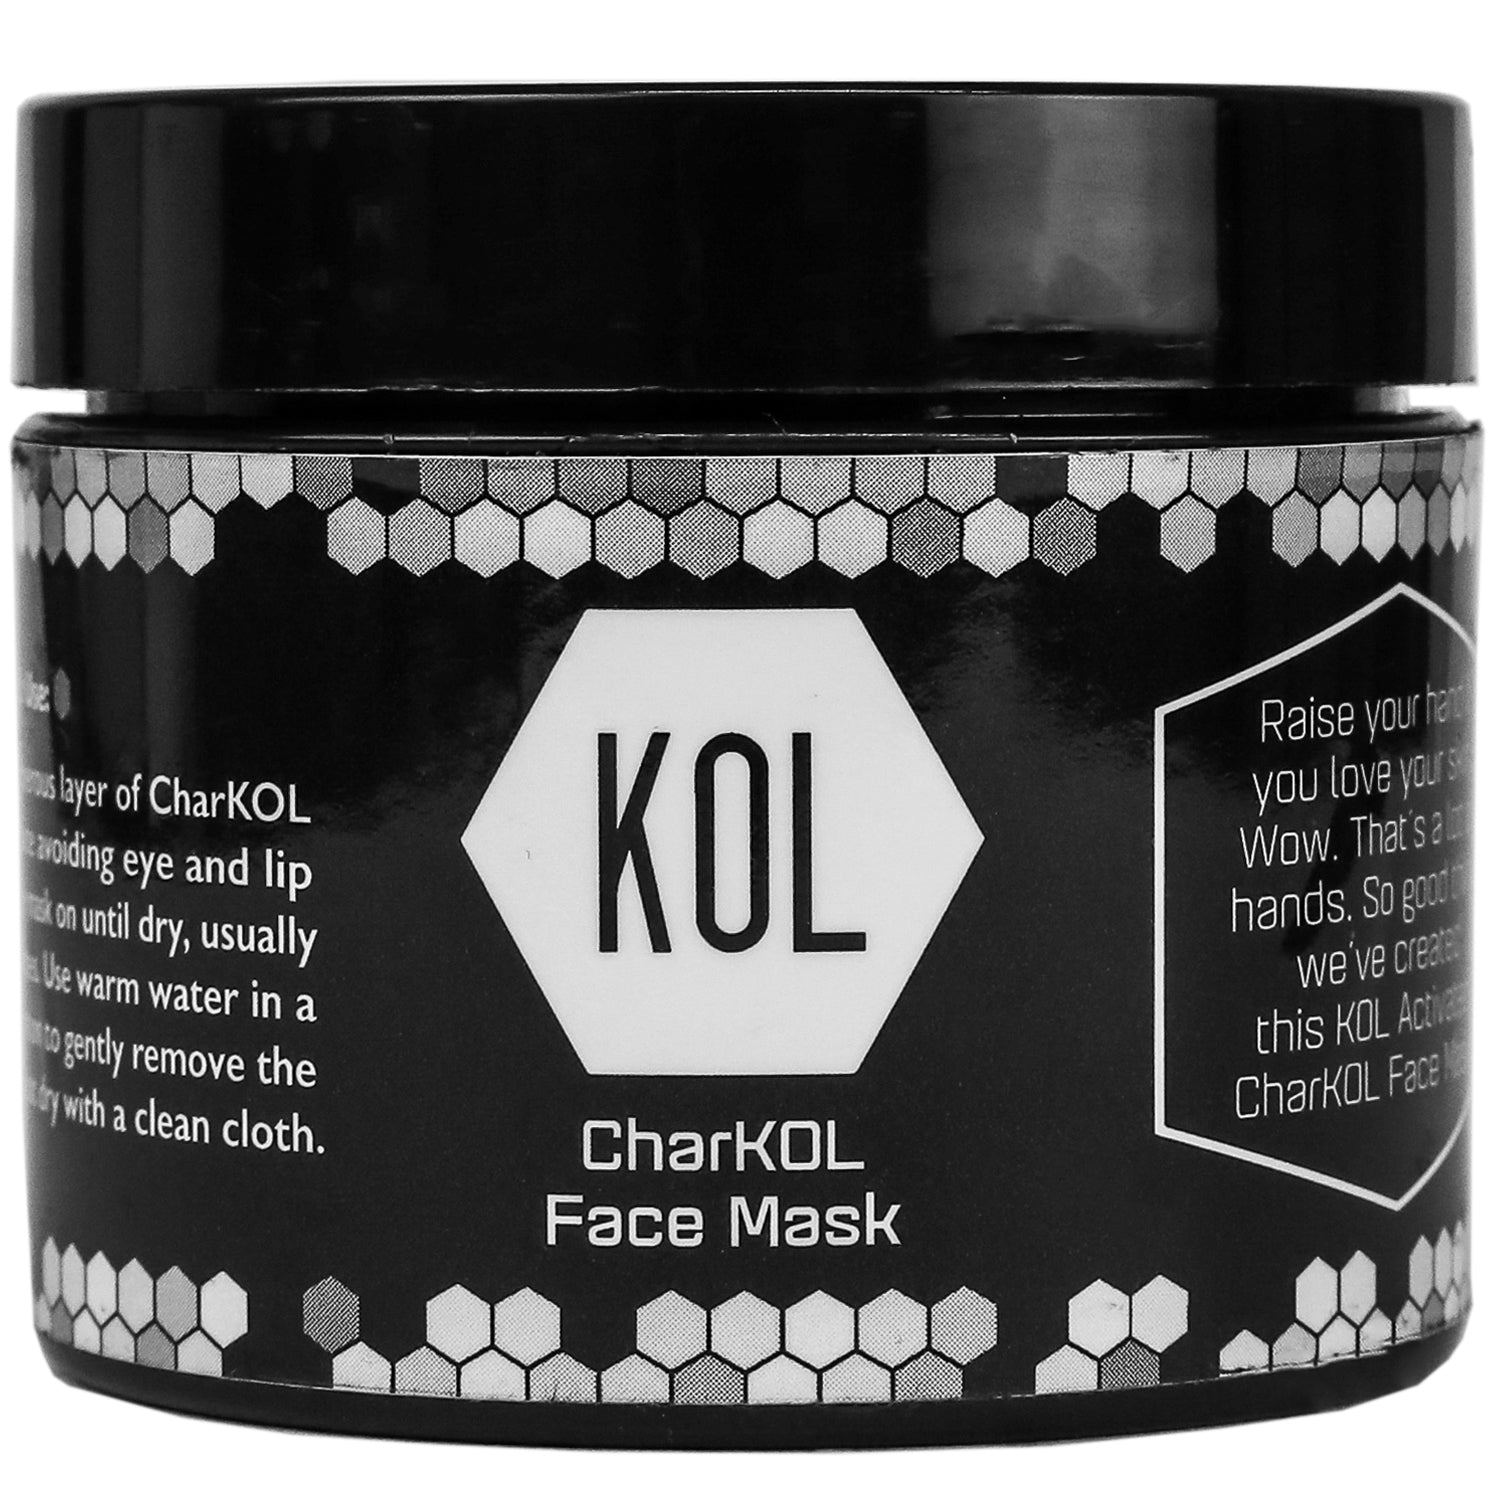 CharKOL Face Mask (2 oz) - KOL KARE | The #1 All Natural, Premium Charcoal Brand. Made in Miami.